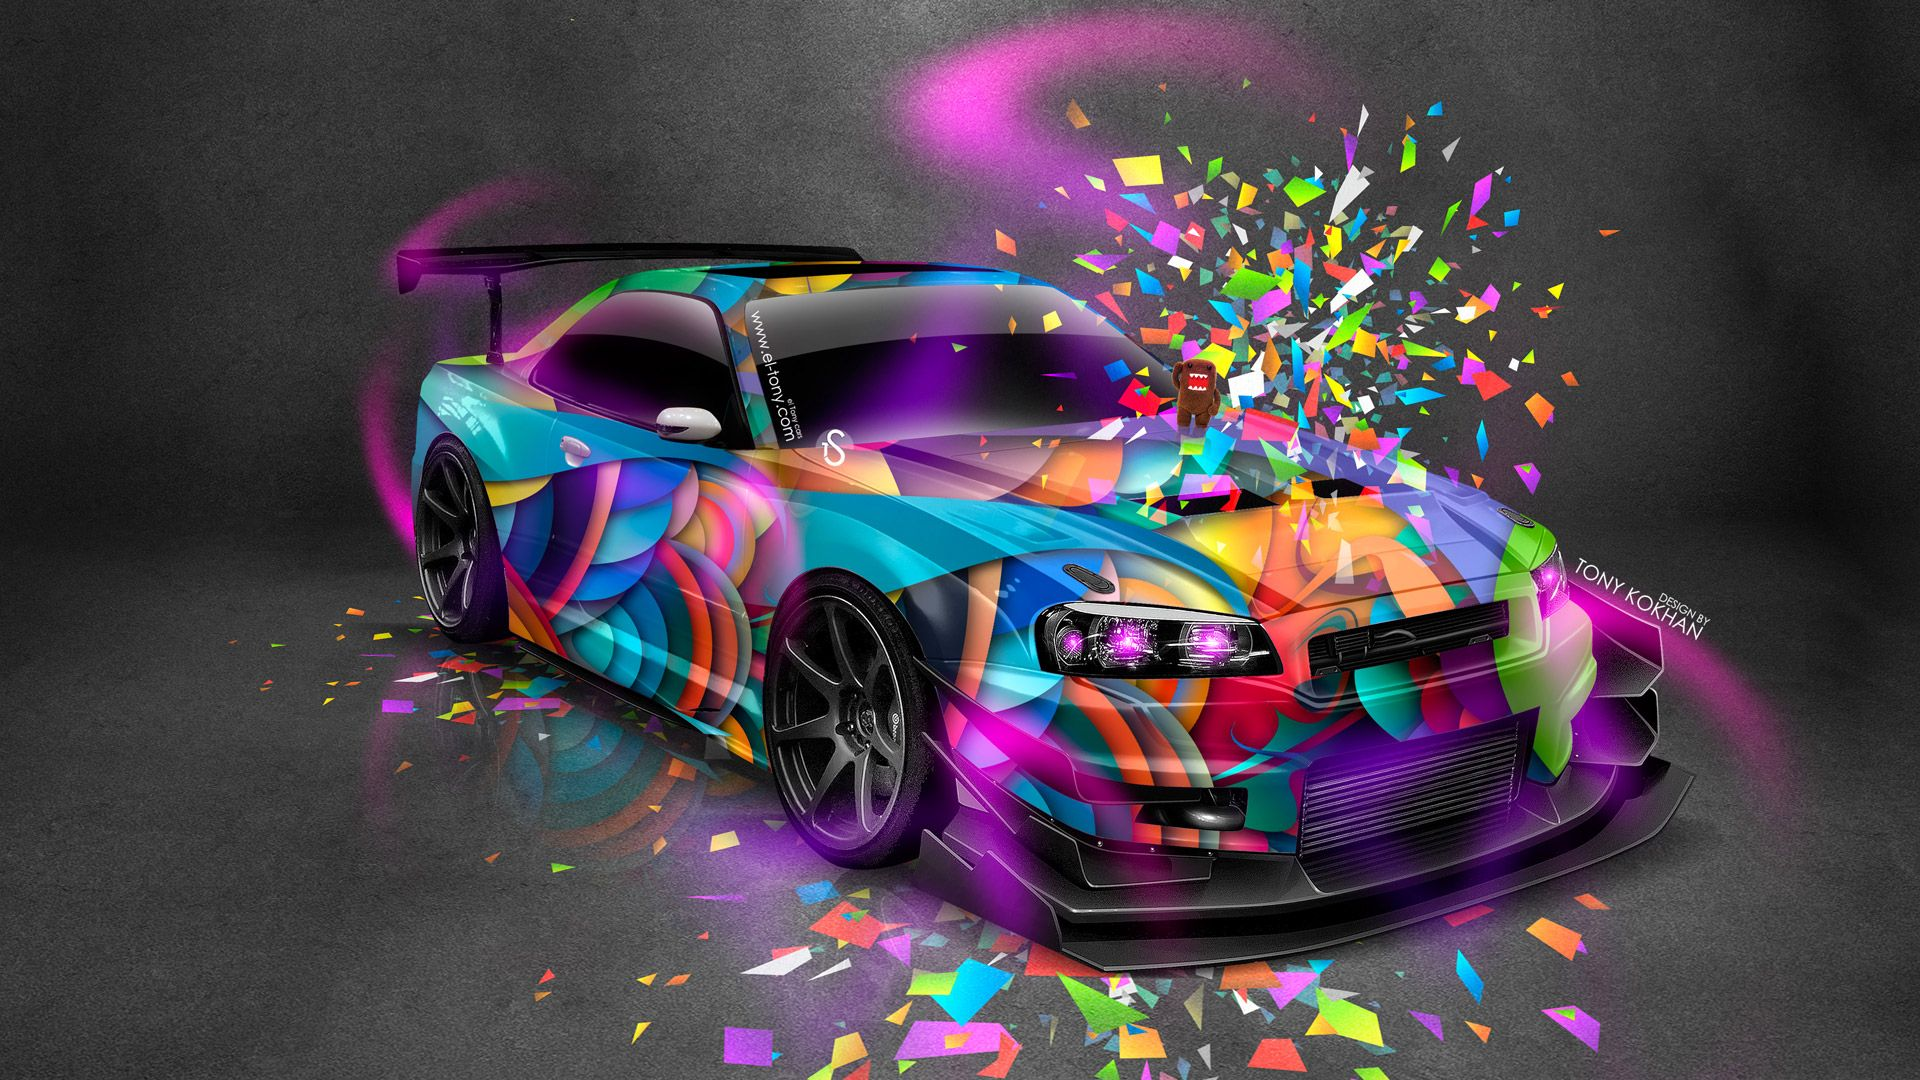 Car, Nissan Skyline, Nissan Skyline R, Nissan, Blue Cars 1920×1280 R32  Wallpapers (46 Wallpapers) | Adorable Wallpapers | Wallpapers | Pinterest |  Wallpaper ...